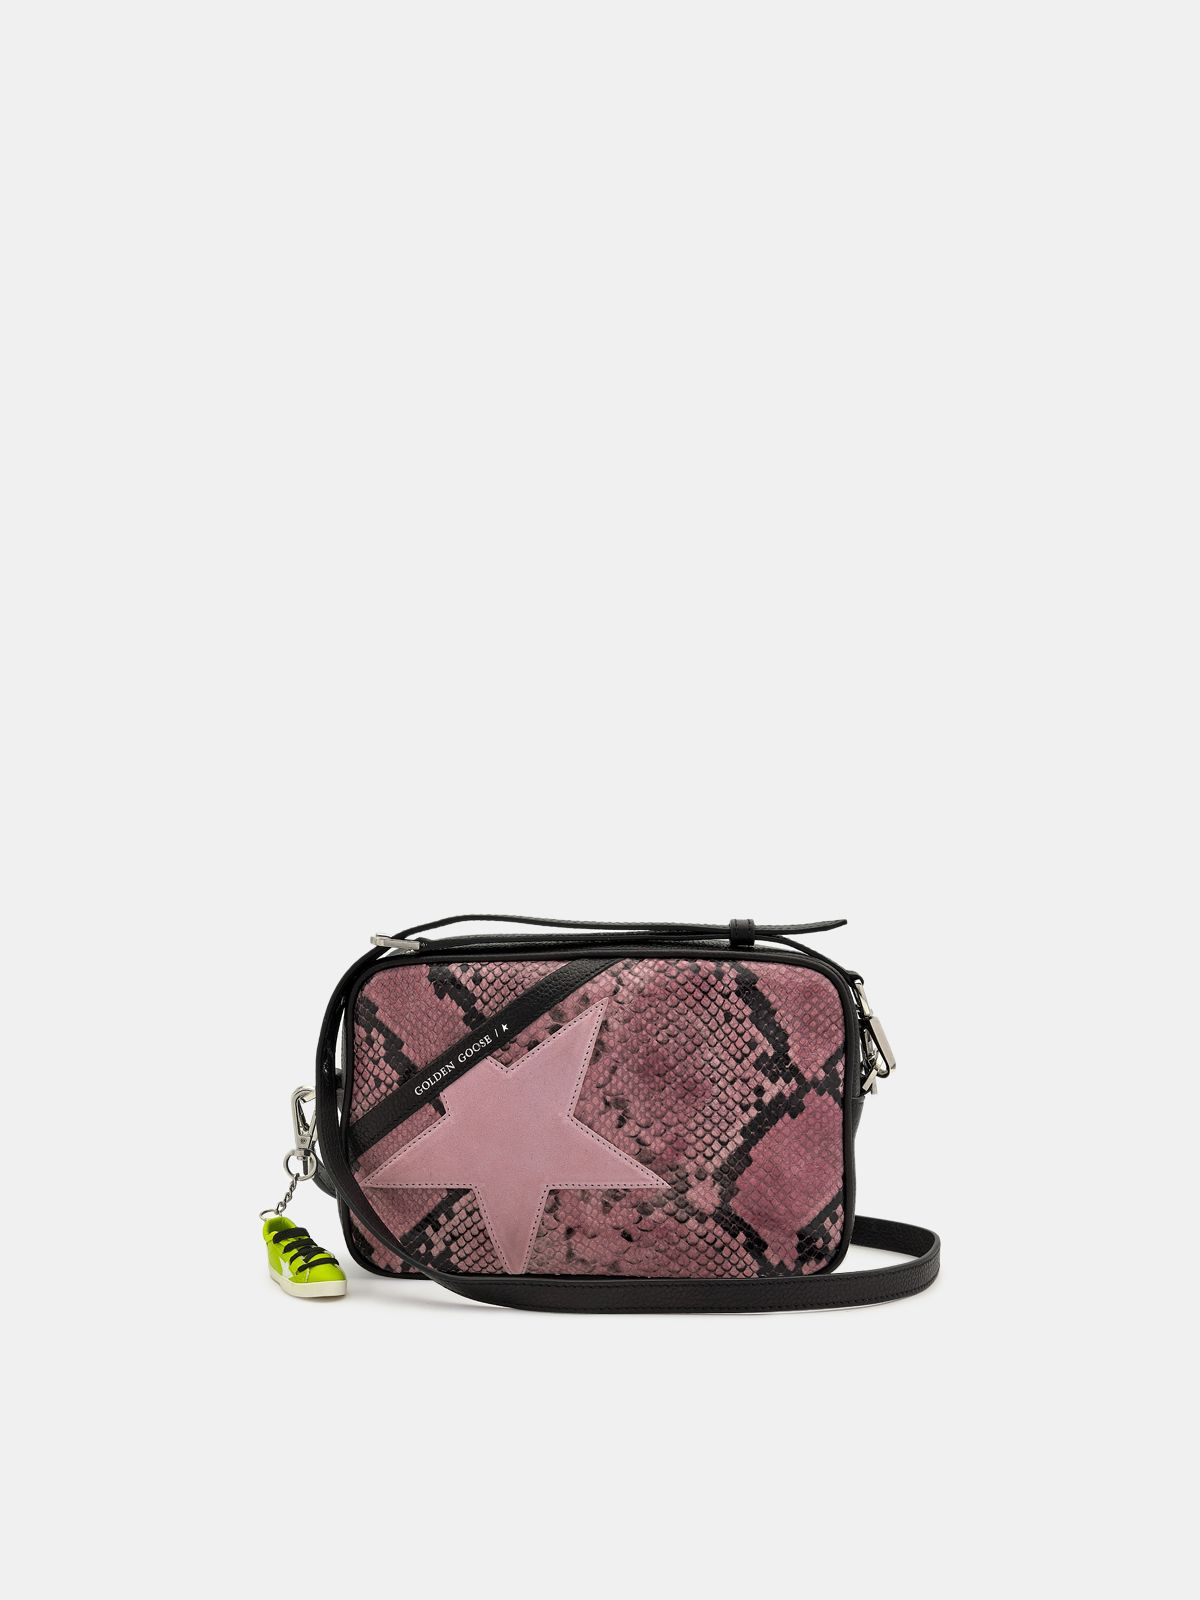 Star Bag made of pink snake-print leather